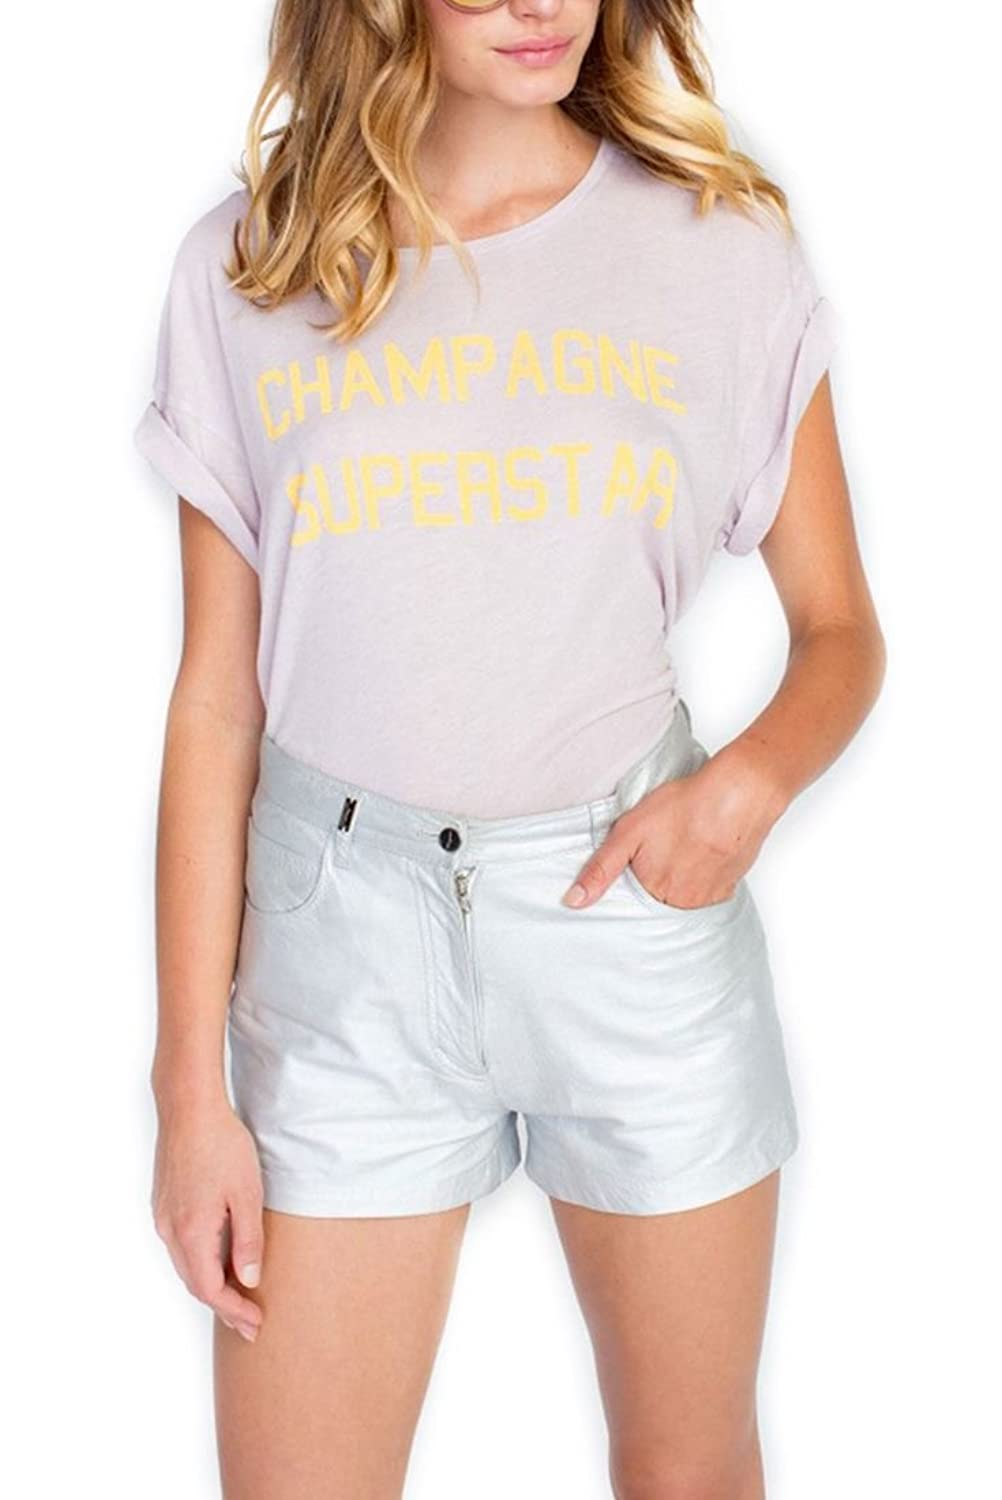 Wildfox - Champagne Superstar Manchester Tee - Lilac Dawn